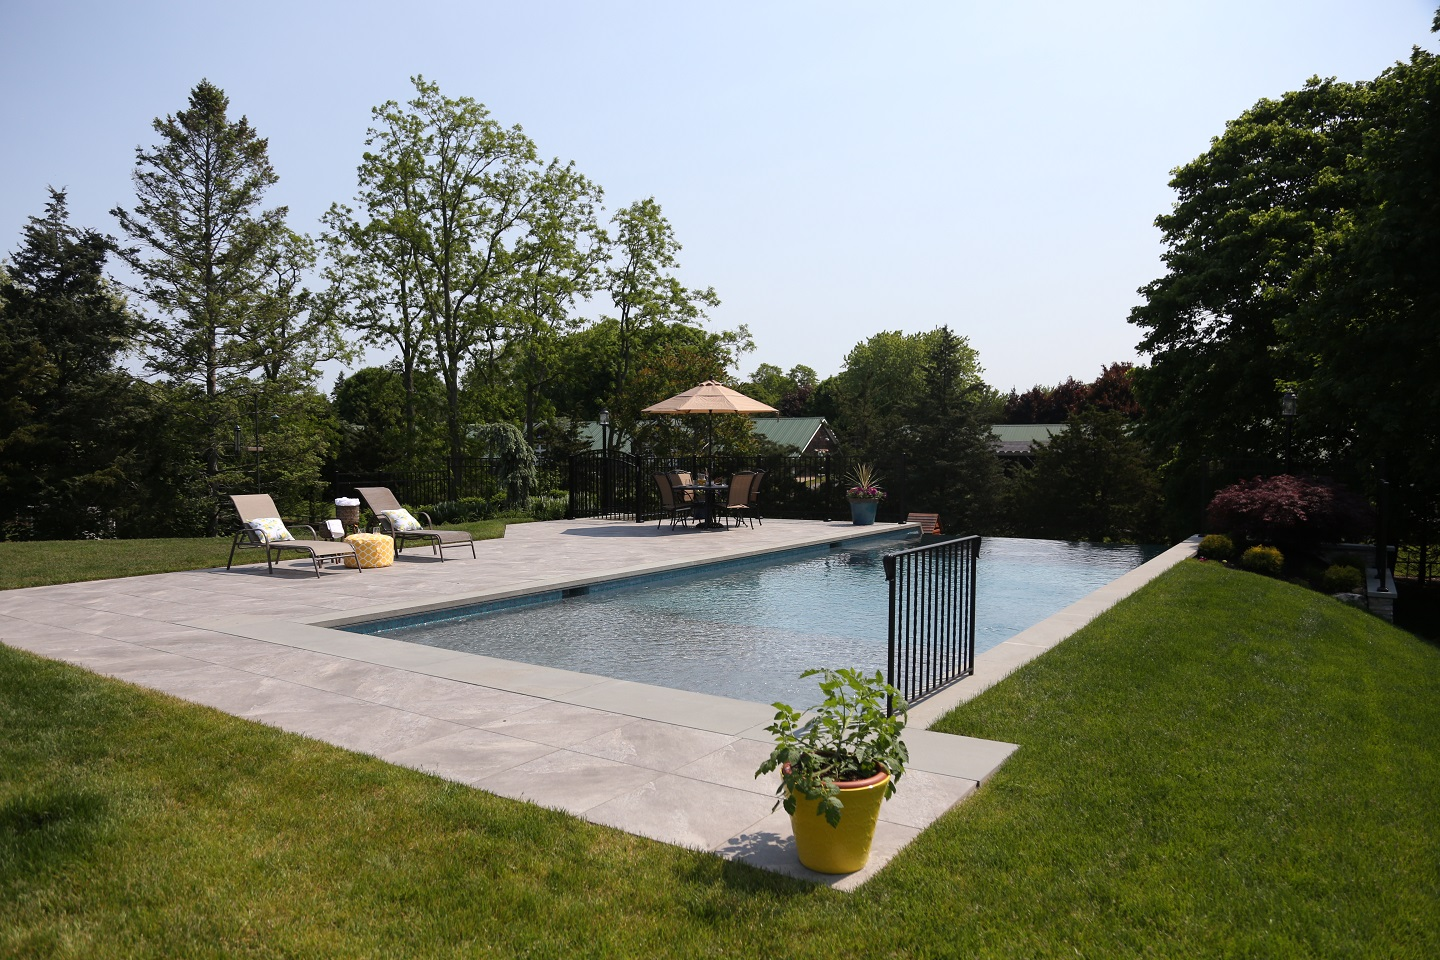 New swimming pool in Long Island NY